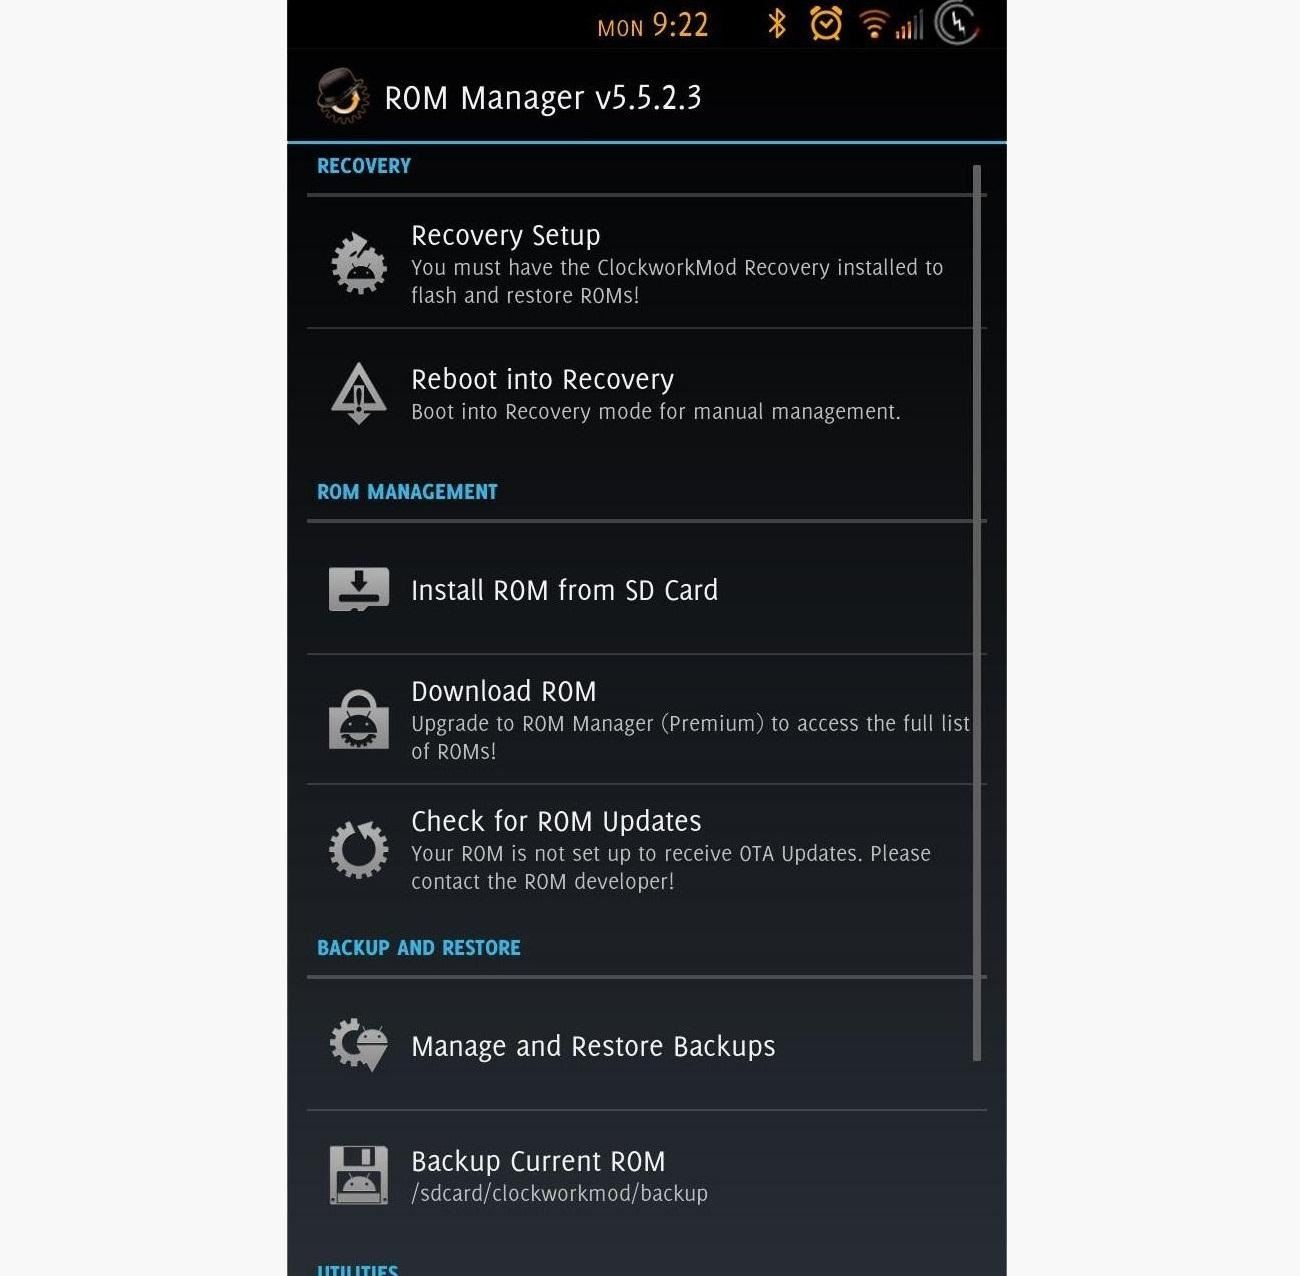 how to open file manager on samsung galaxy s3